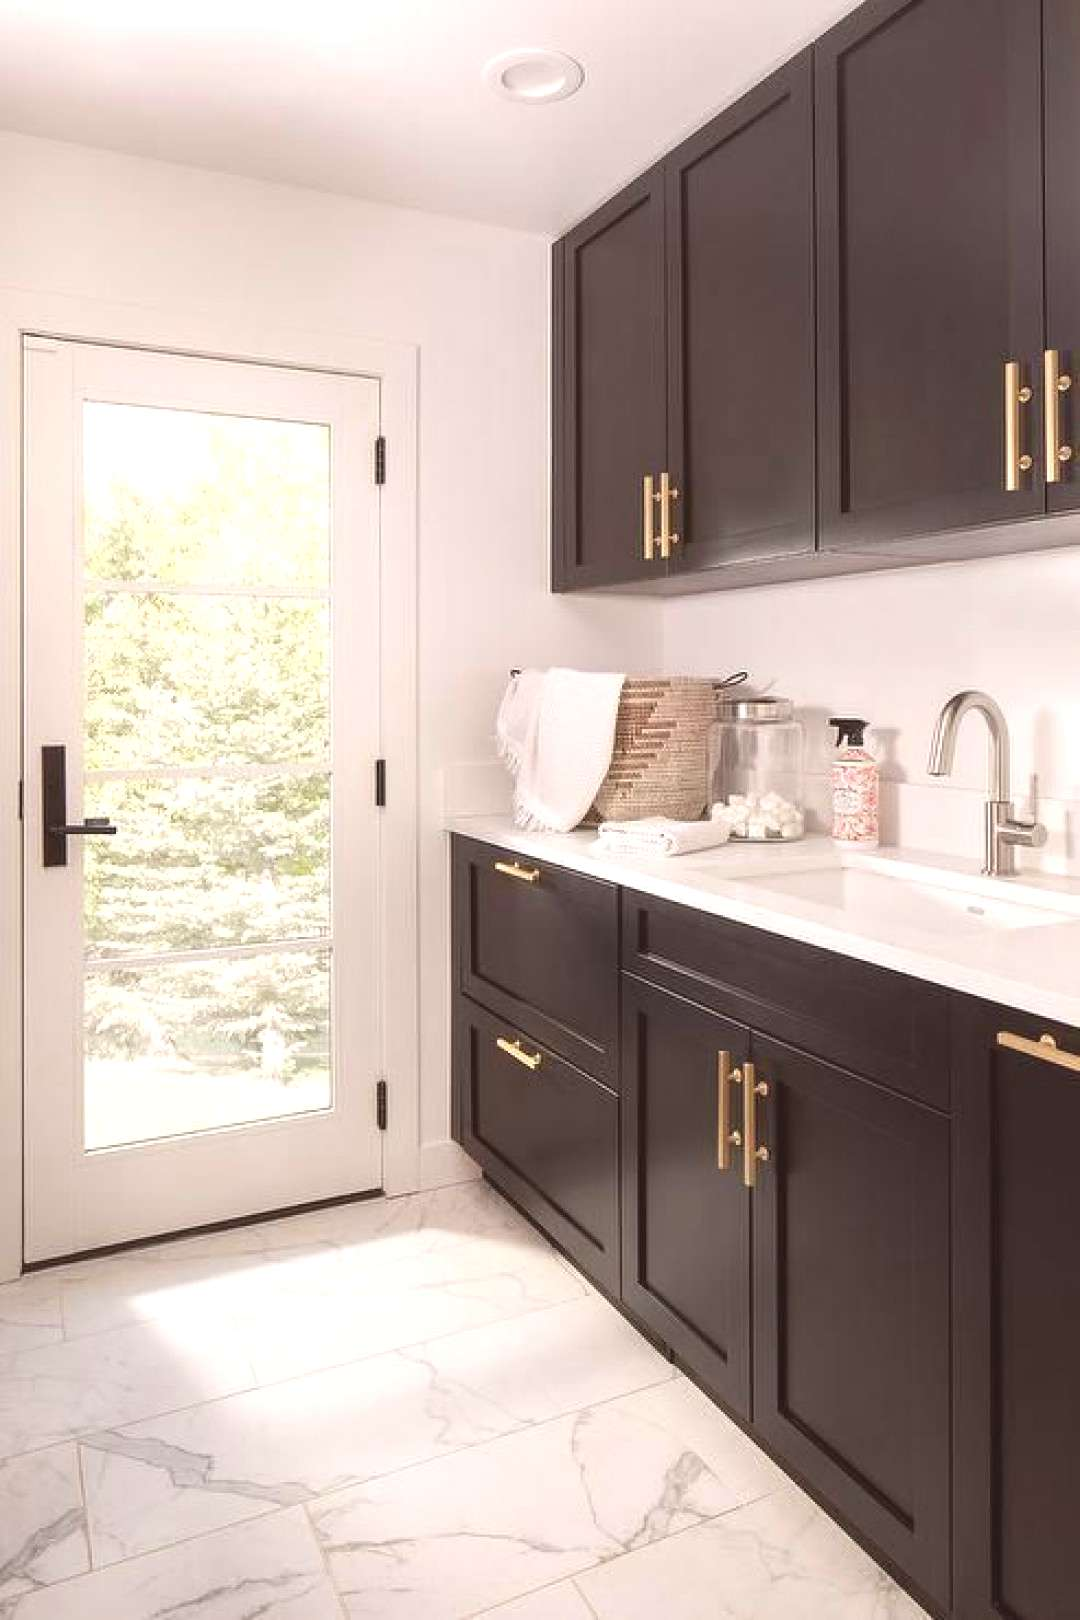 Black shaker laundry room cabinets accented with brushed gold pulls are mounted over a sink with a